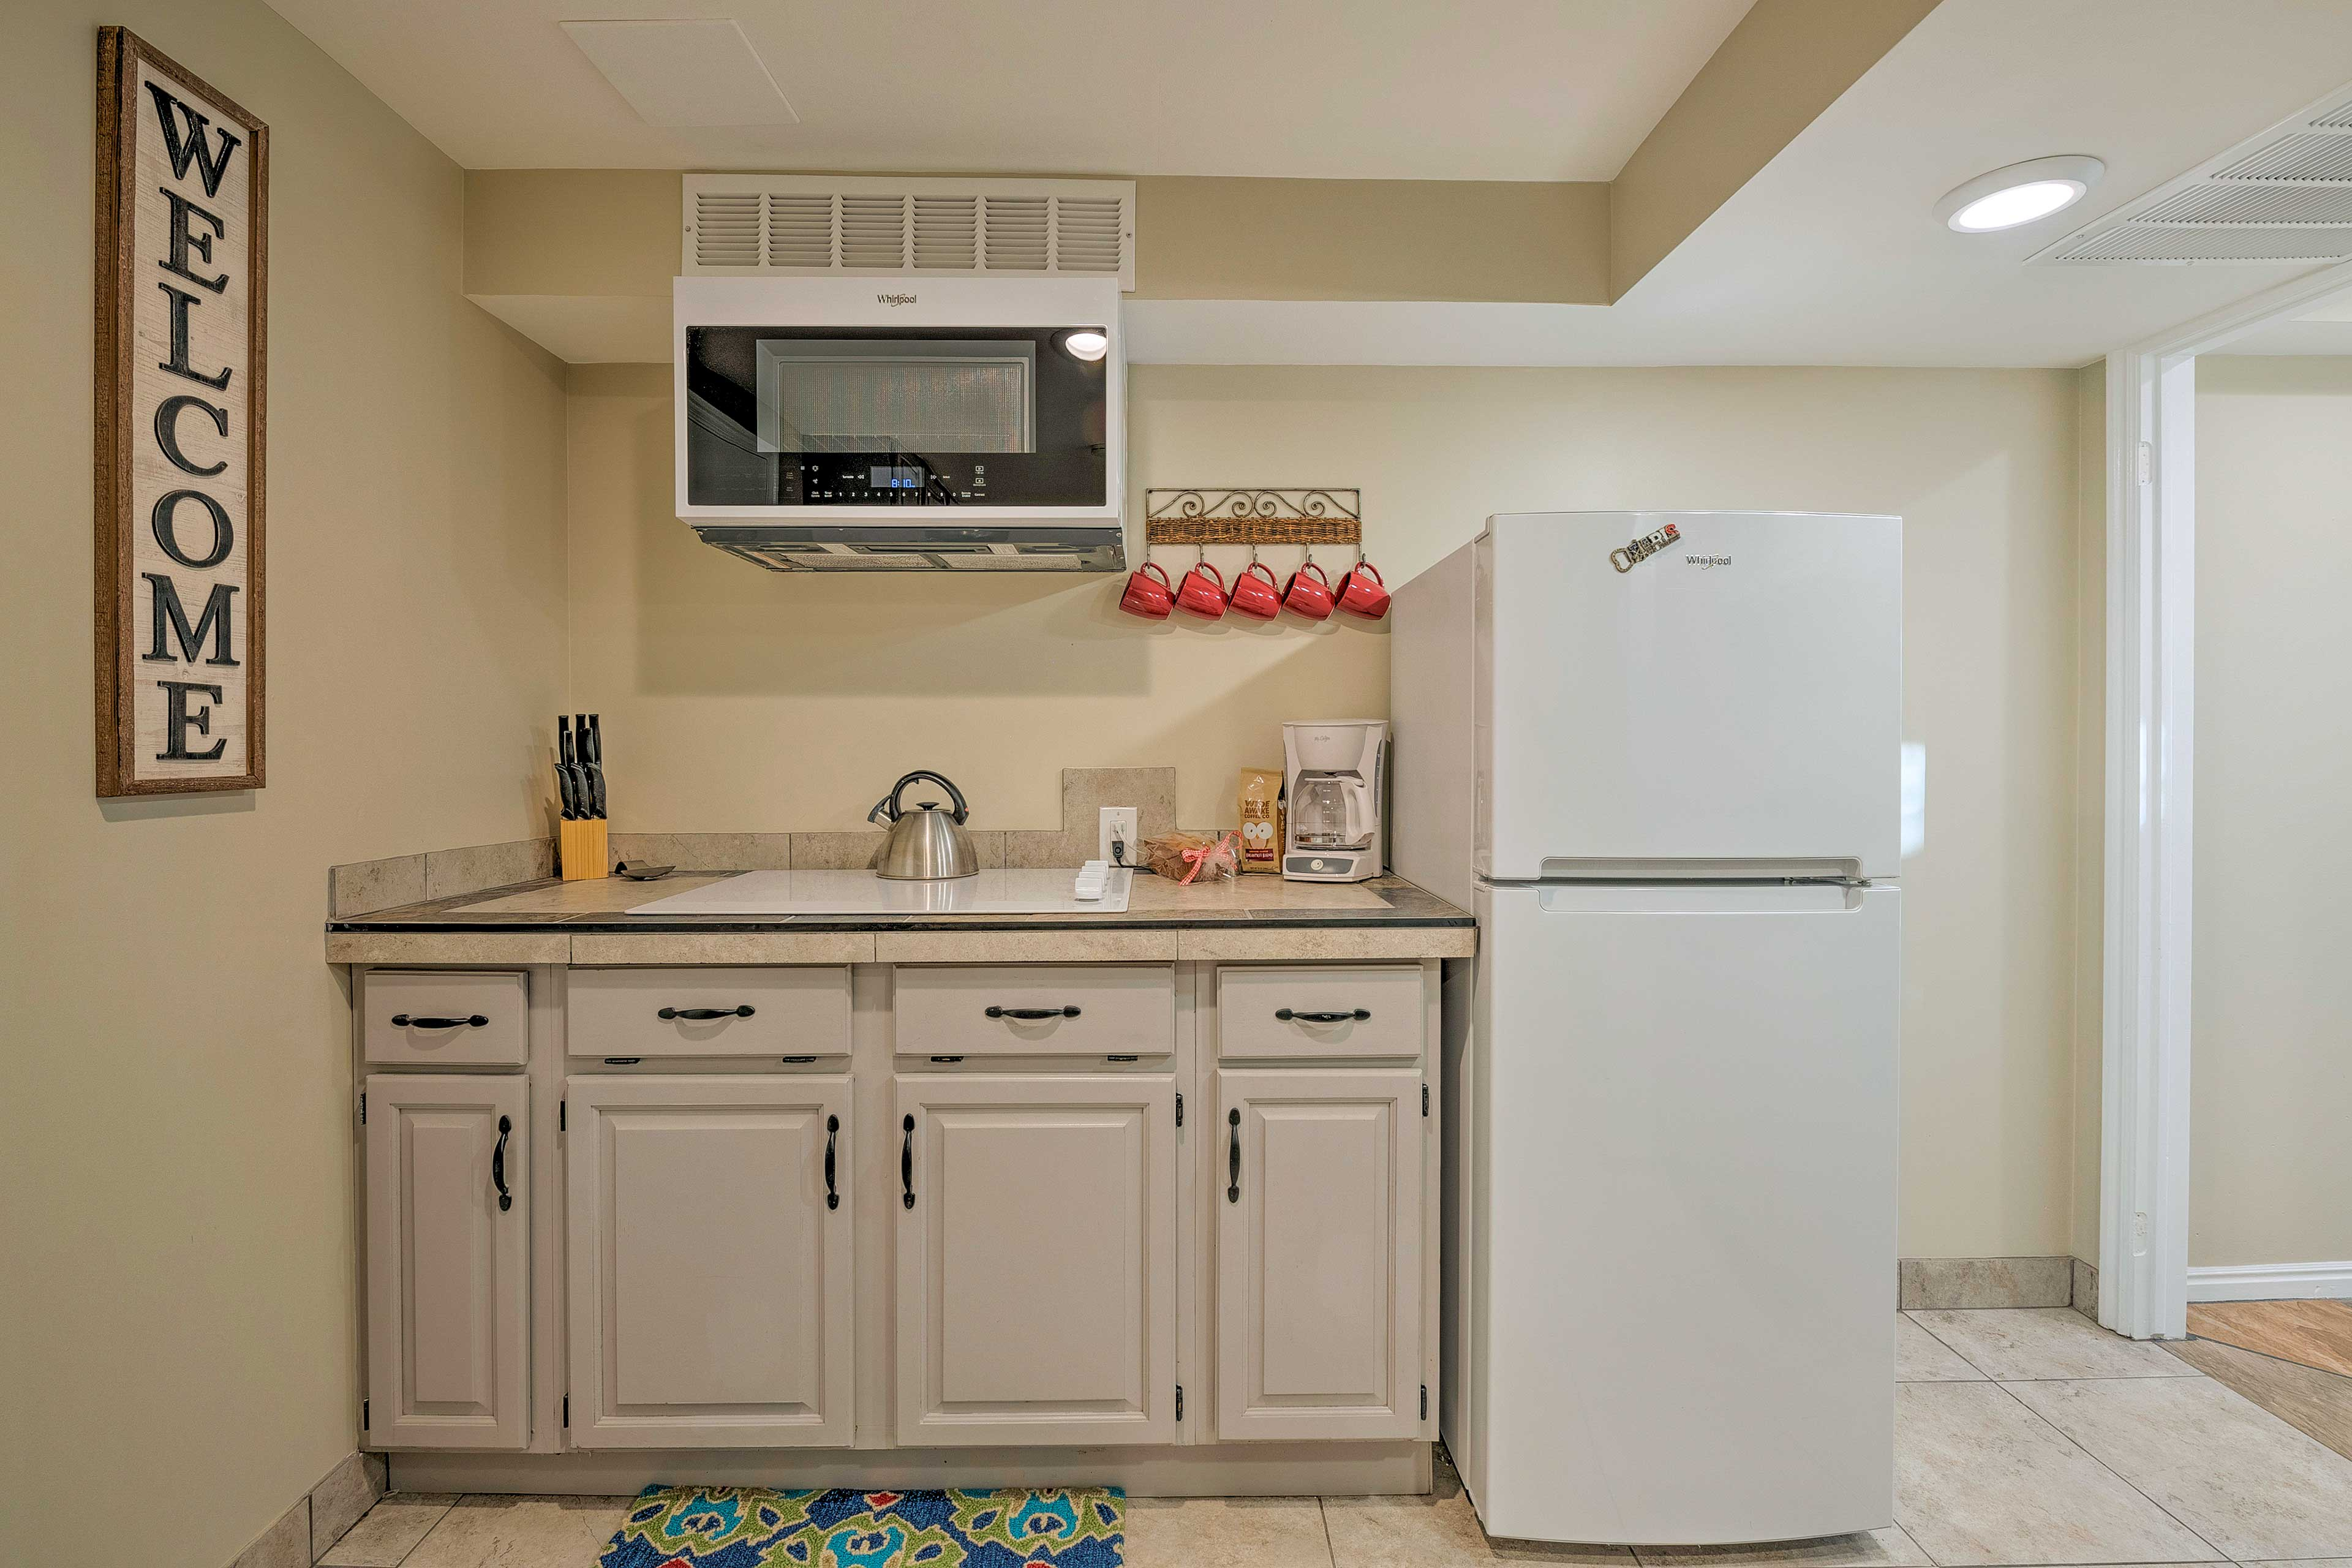 The kitchenette is well equipped with a stove top, fridge, and more.